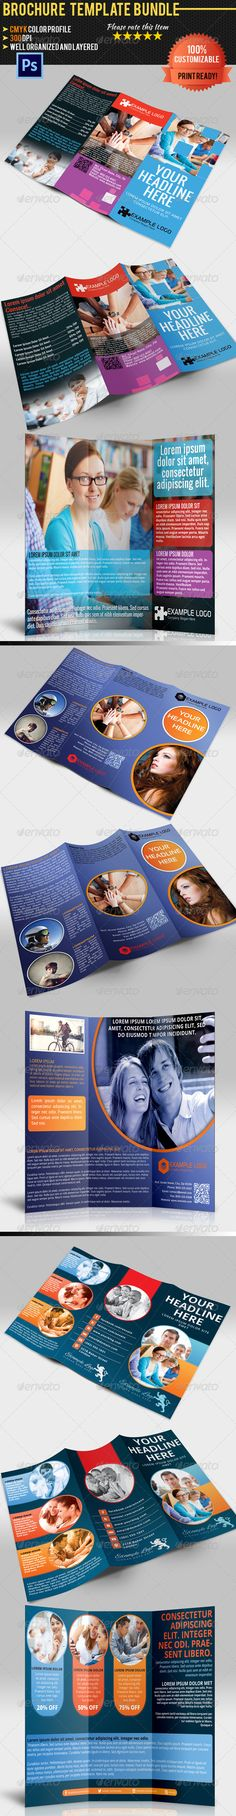 Multipurpose Tri-Fold Brochure Bundle  #GraphicRiver        3x Professional and clean business brochures. Fully layered and very easy to customize. Suitable for corporate and other businesses.   Smart Objects ( Help! )  CMYK Colors  300DPI  Print Ready   Free fonts used. Download links inside read_me.txt   Included Items:  graphicriver /item/multipurpose-trifold-brochure-vol1/4734426  graphicriver /item/multipurpose-trifold-brochure-vol2/4793786  graphicriver…